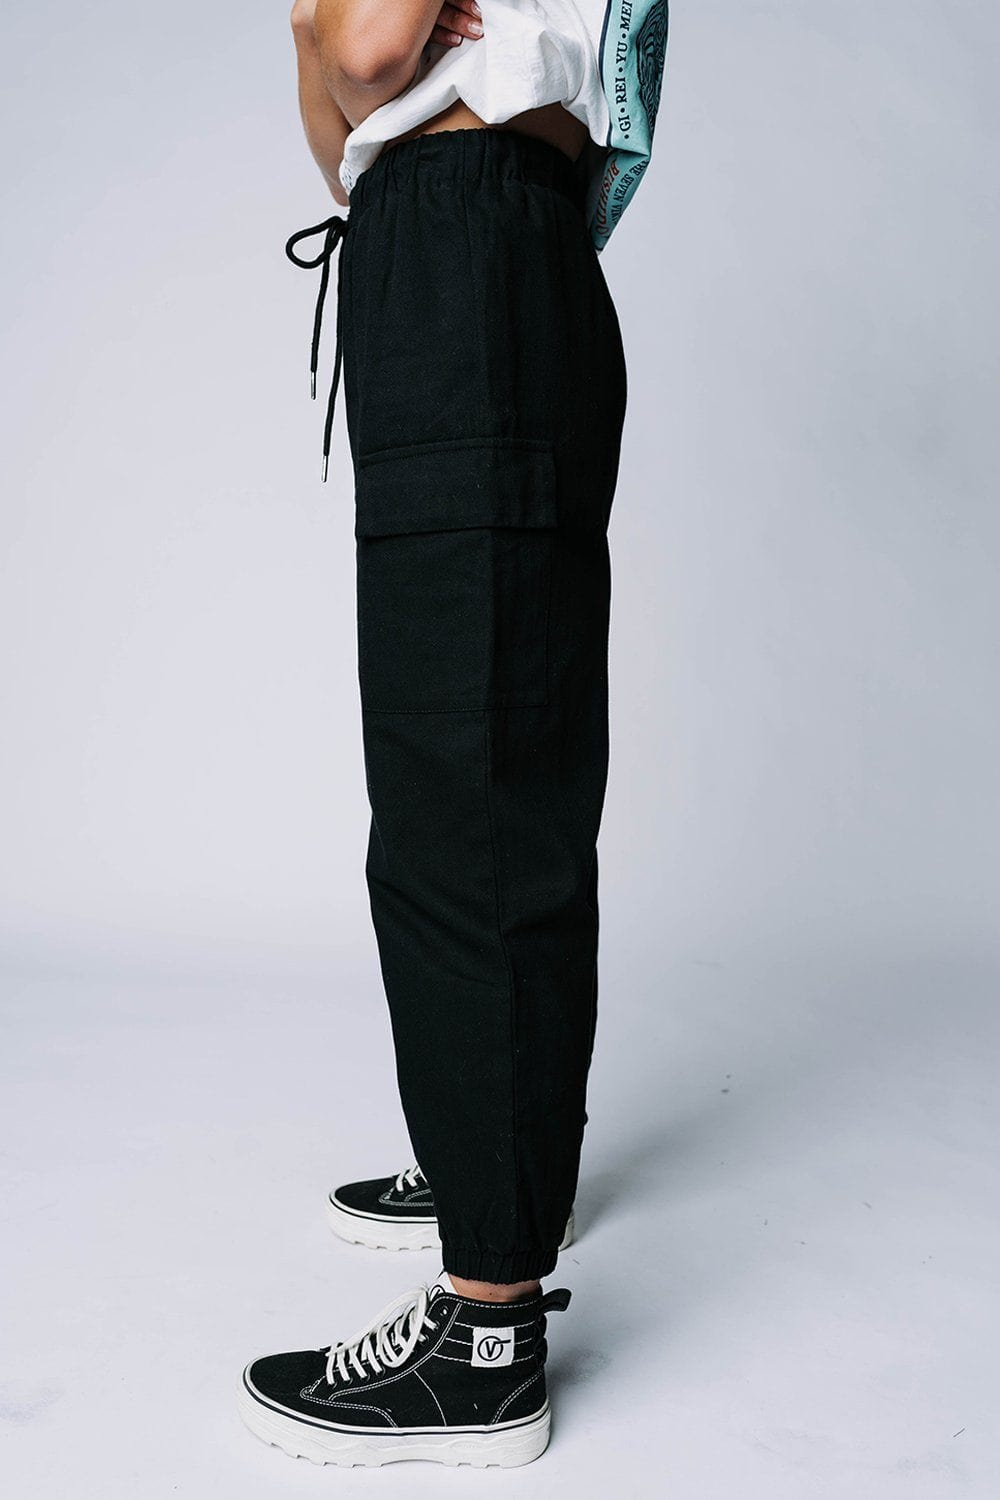 Step Up Jogger Pant in Black, cladandcloth, Crescent.